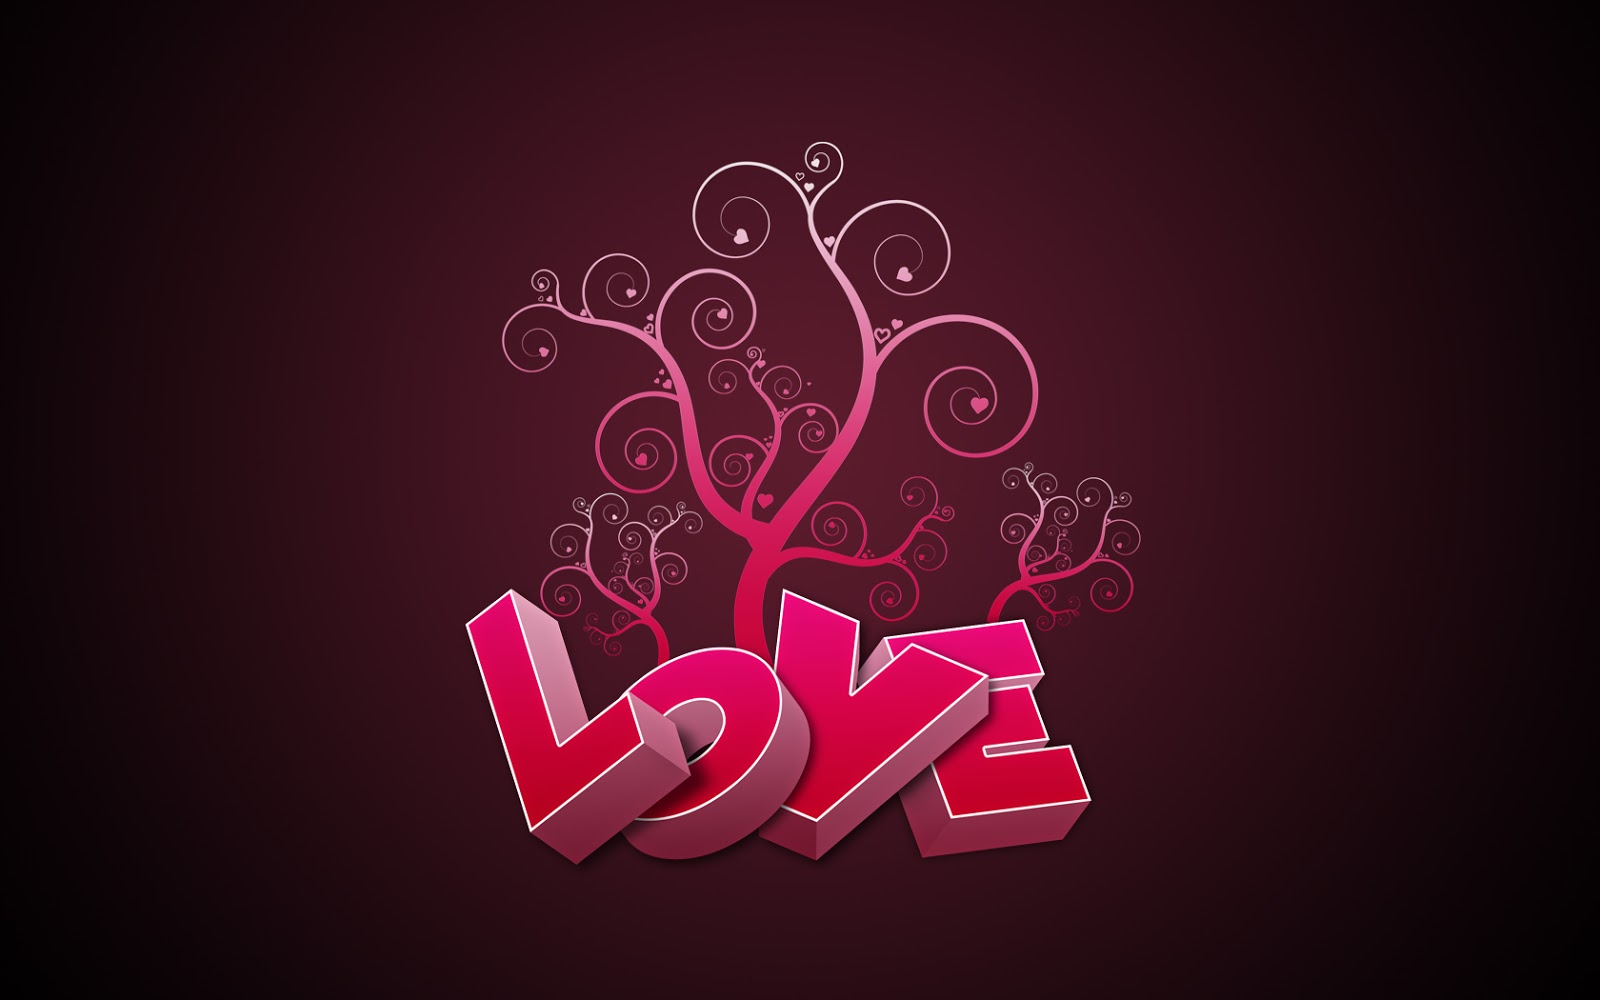 No More Love Hd Wallpaper : Sms with Wallpapers: 12/28/13